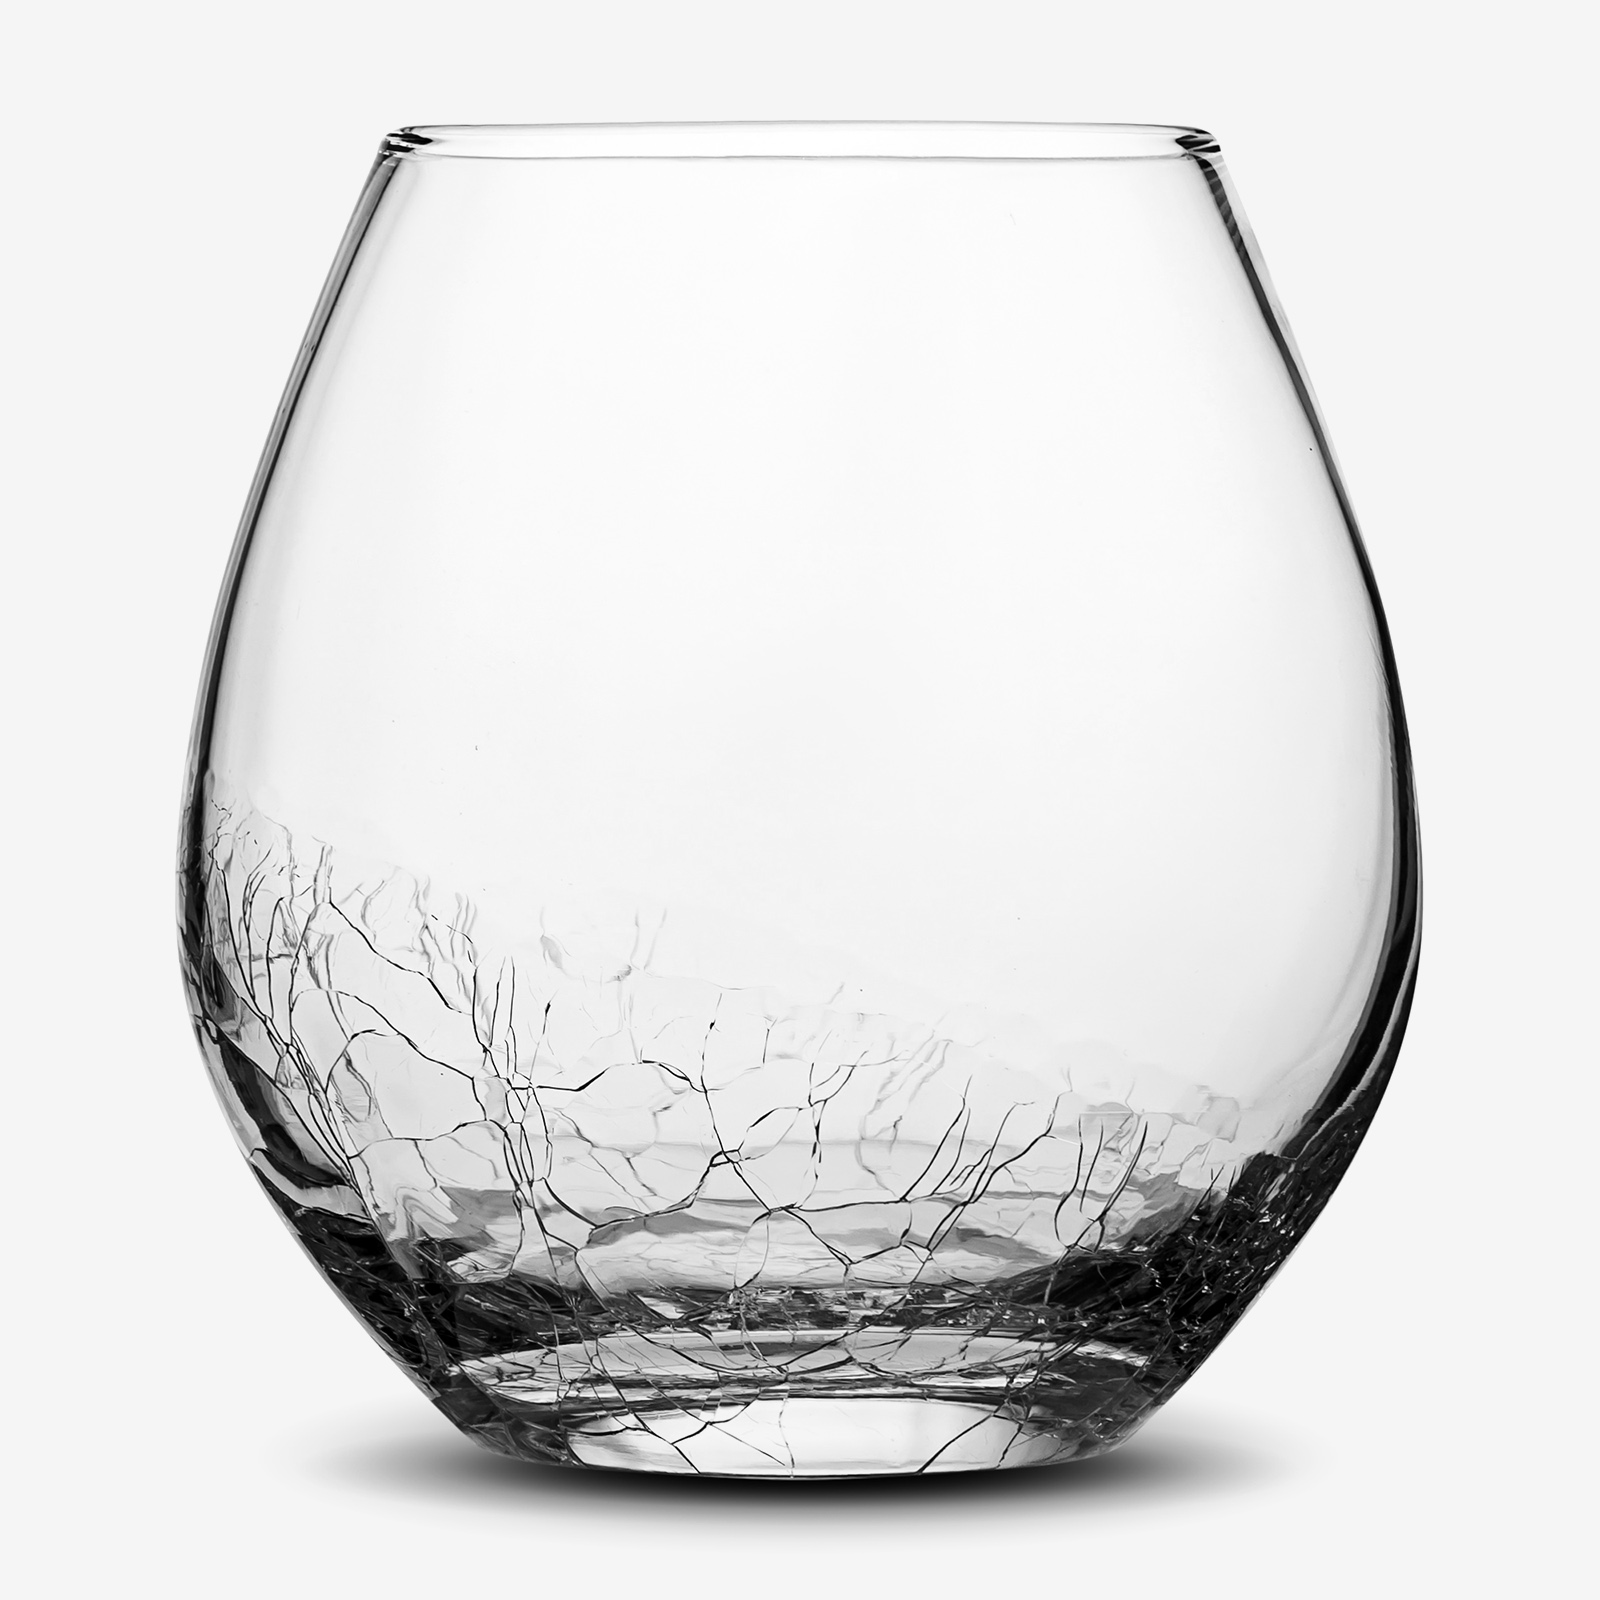 glass product photo